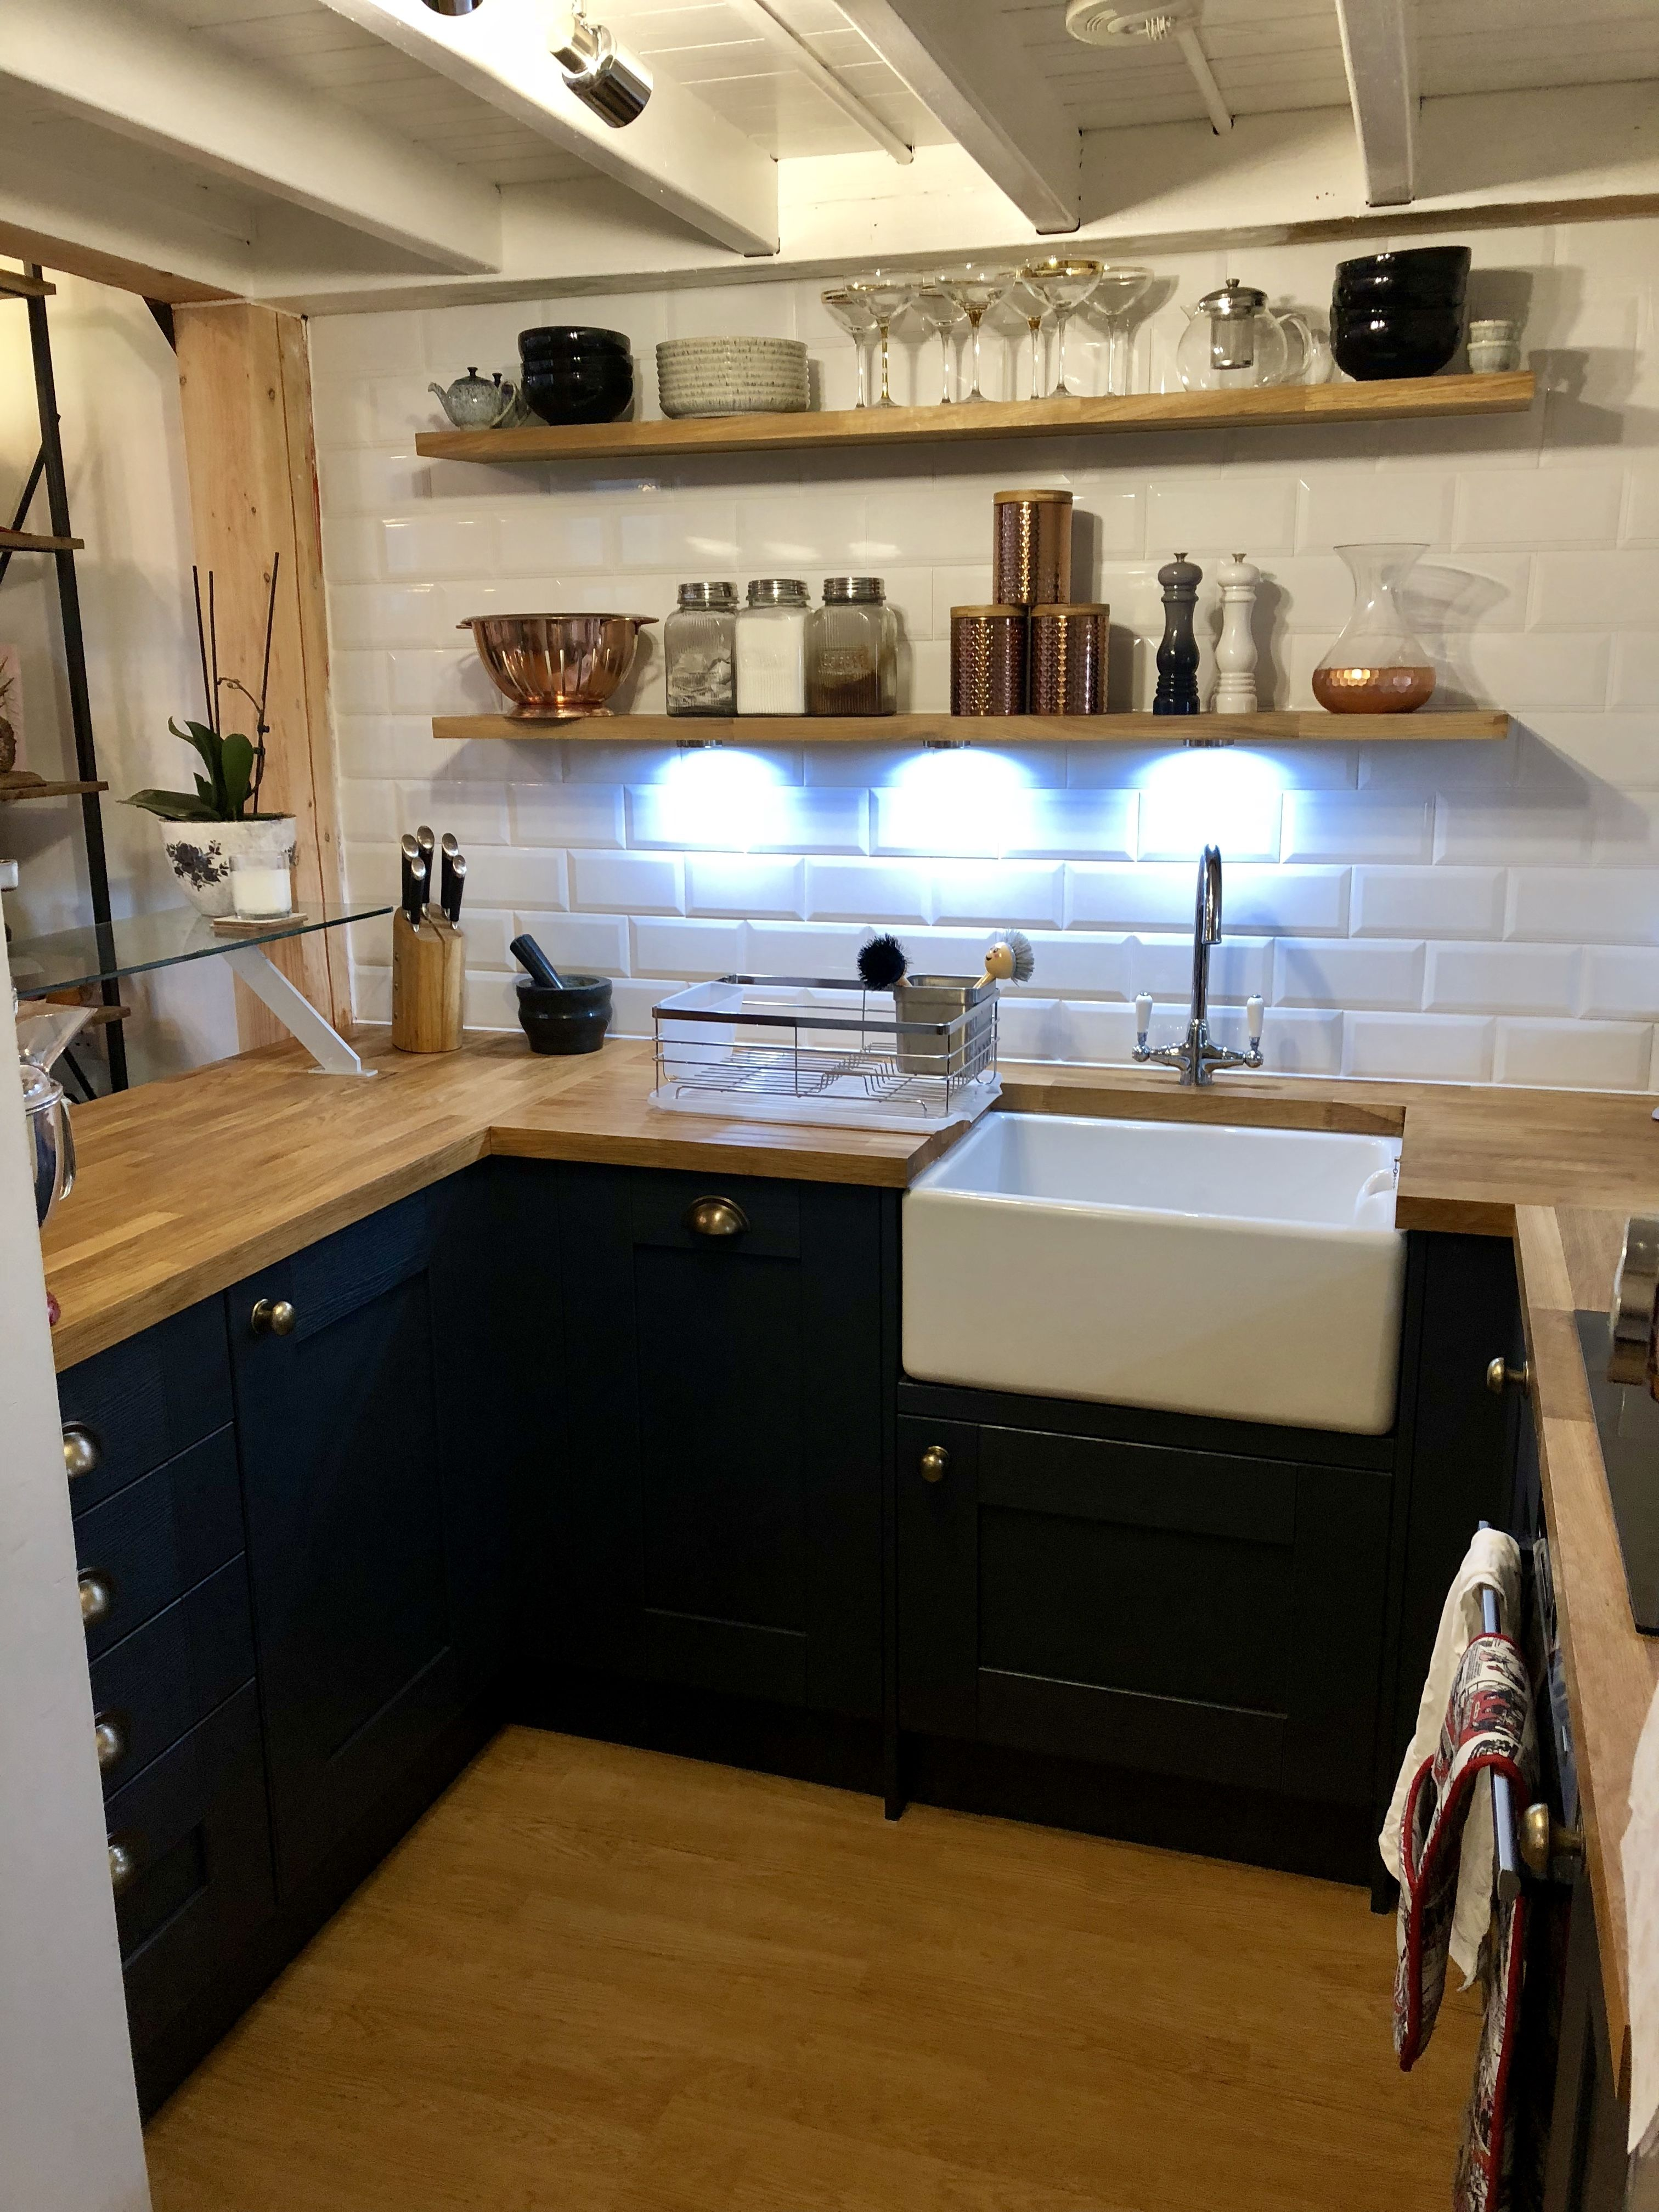 Charmant Small Kitchen. Under Bed Deck. Blue And Grey. Wickes Milton Midnight